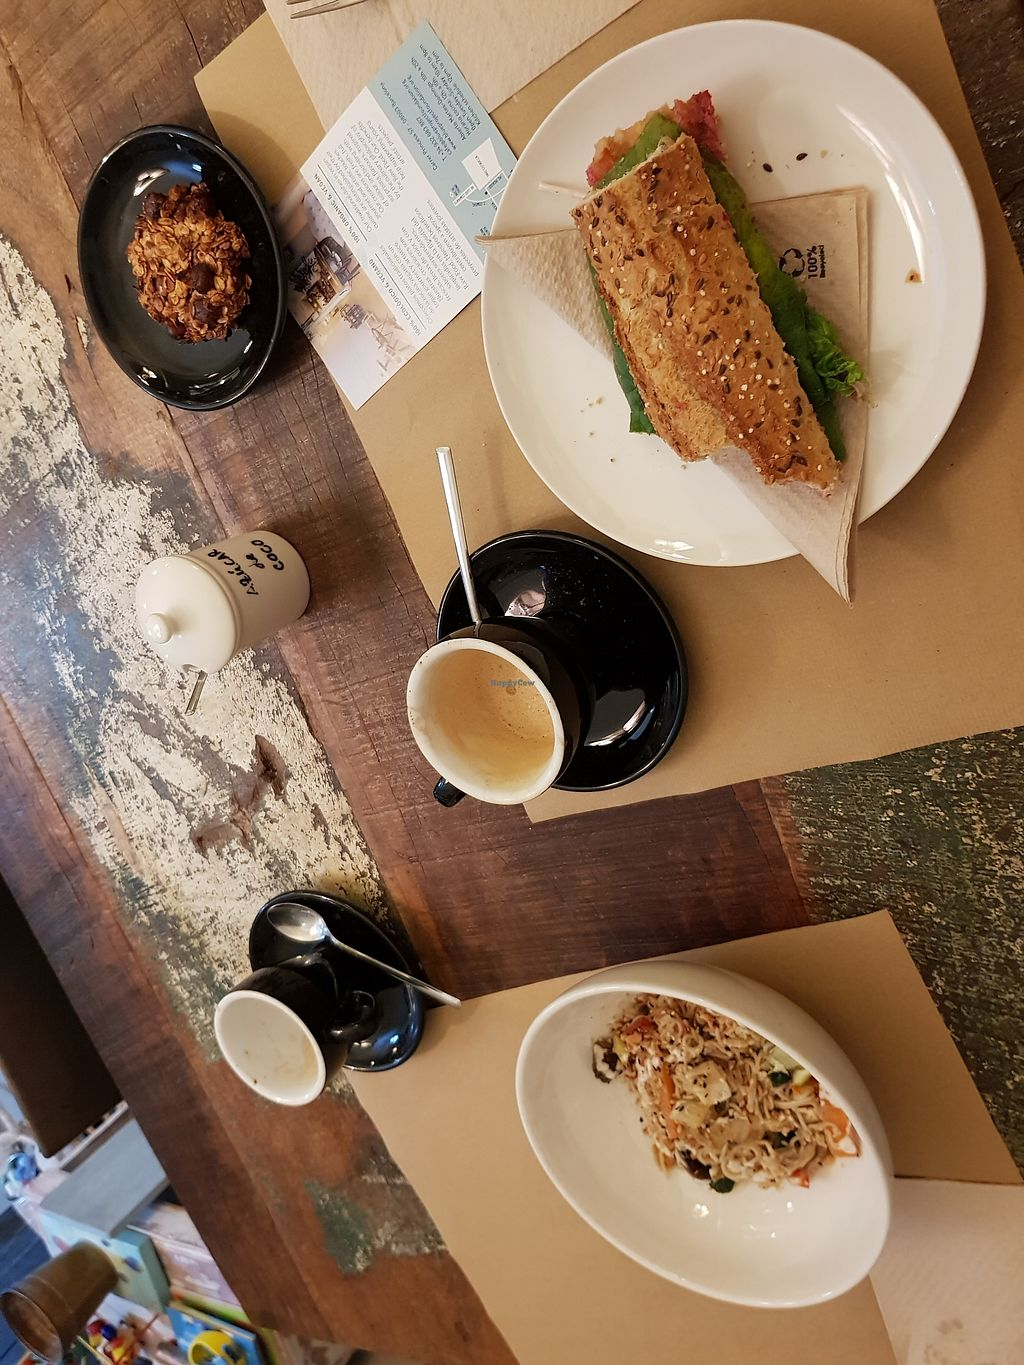 """Photo of El Cafe Blueproject  by <a href=""""/members/profile/rachie18"""">rachie18</a> <br/>Pad Thai and beet hummus sandwhich <br/> February 9, 2018  - <a href='/contact/abuse/image/42332/356990'>Report</a>"""